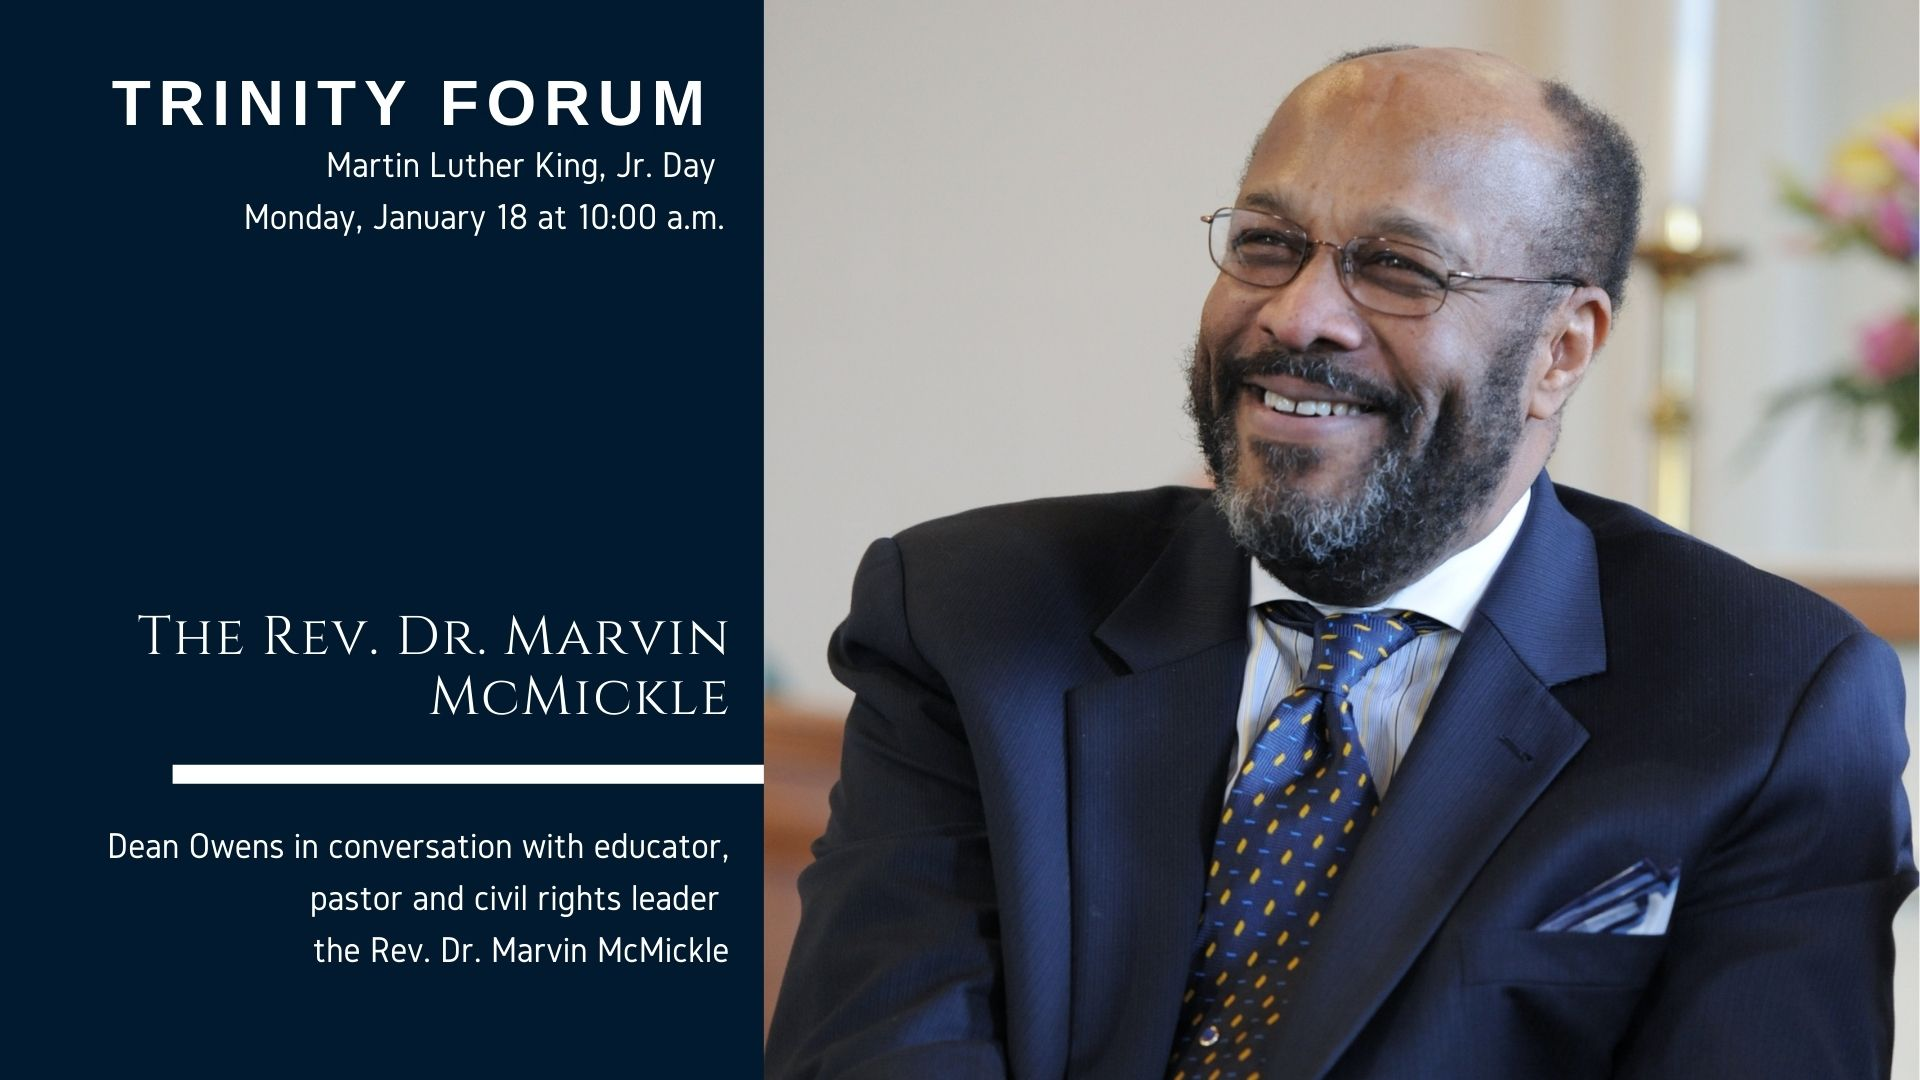 The Forum Video: The Rev. Dr. Marvin McMickle